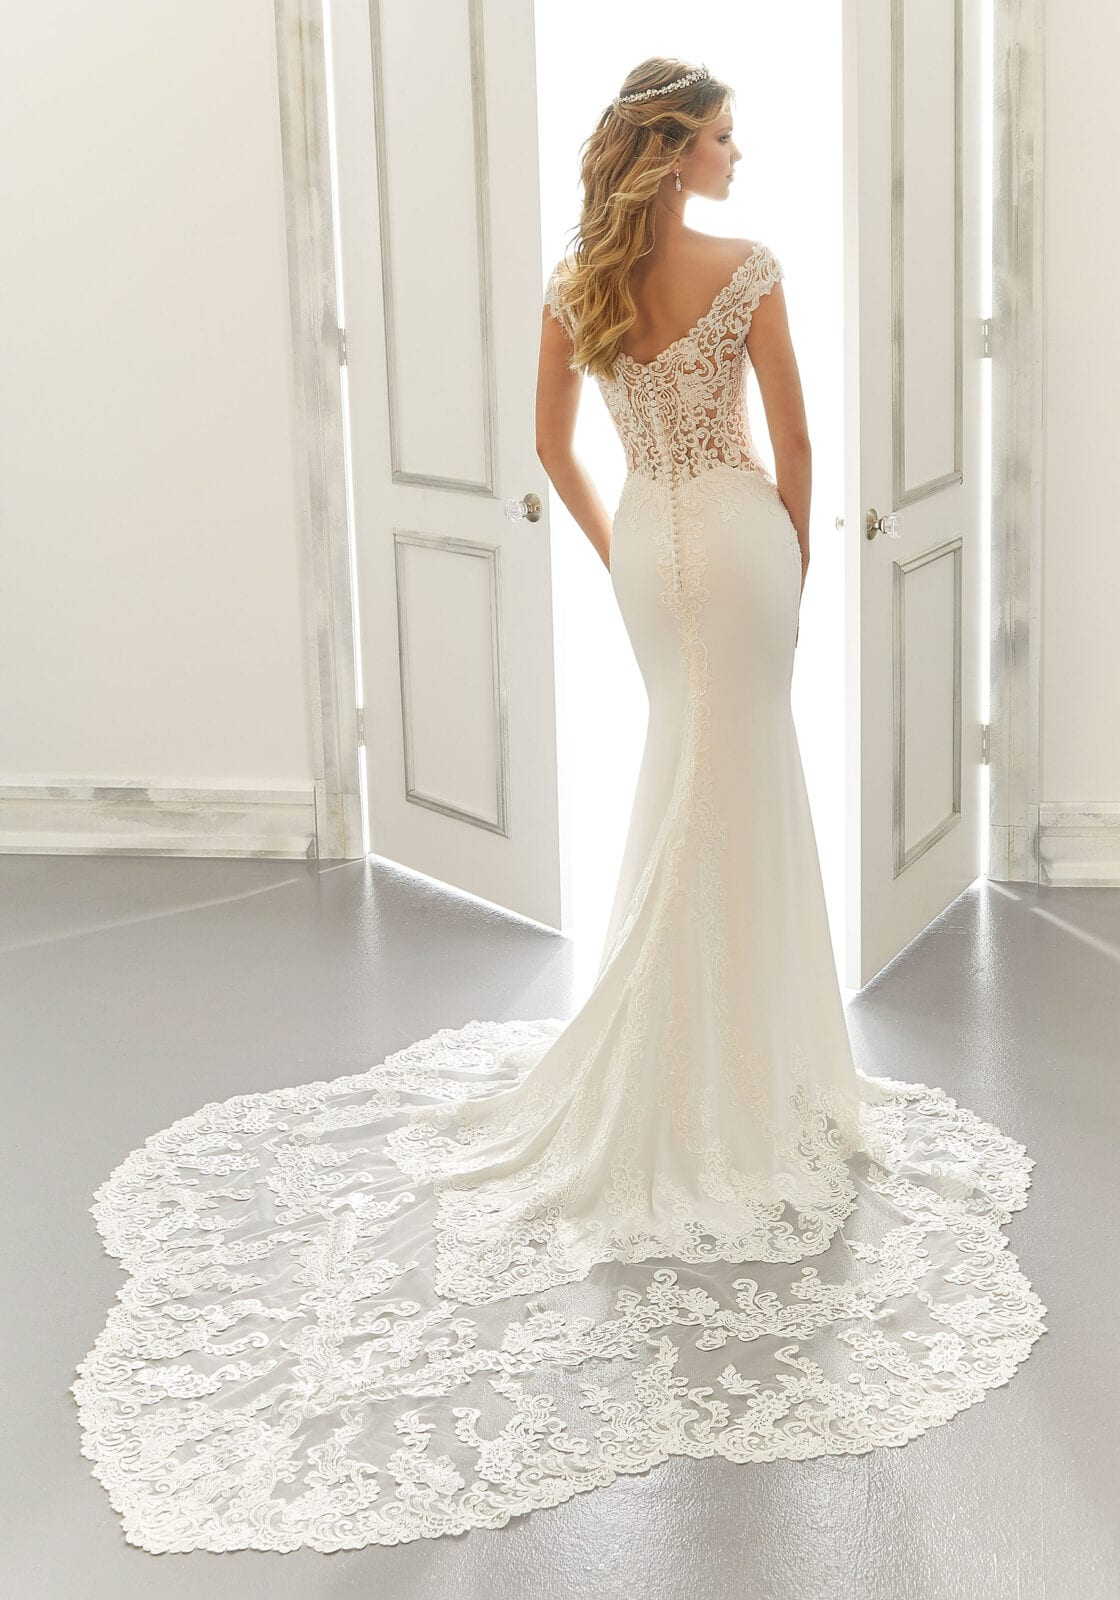 Long lace wedding dress train